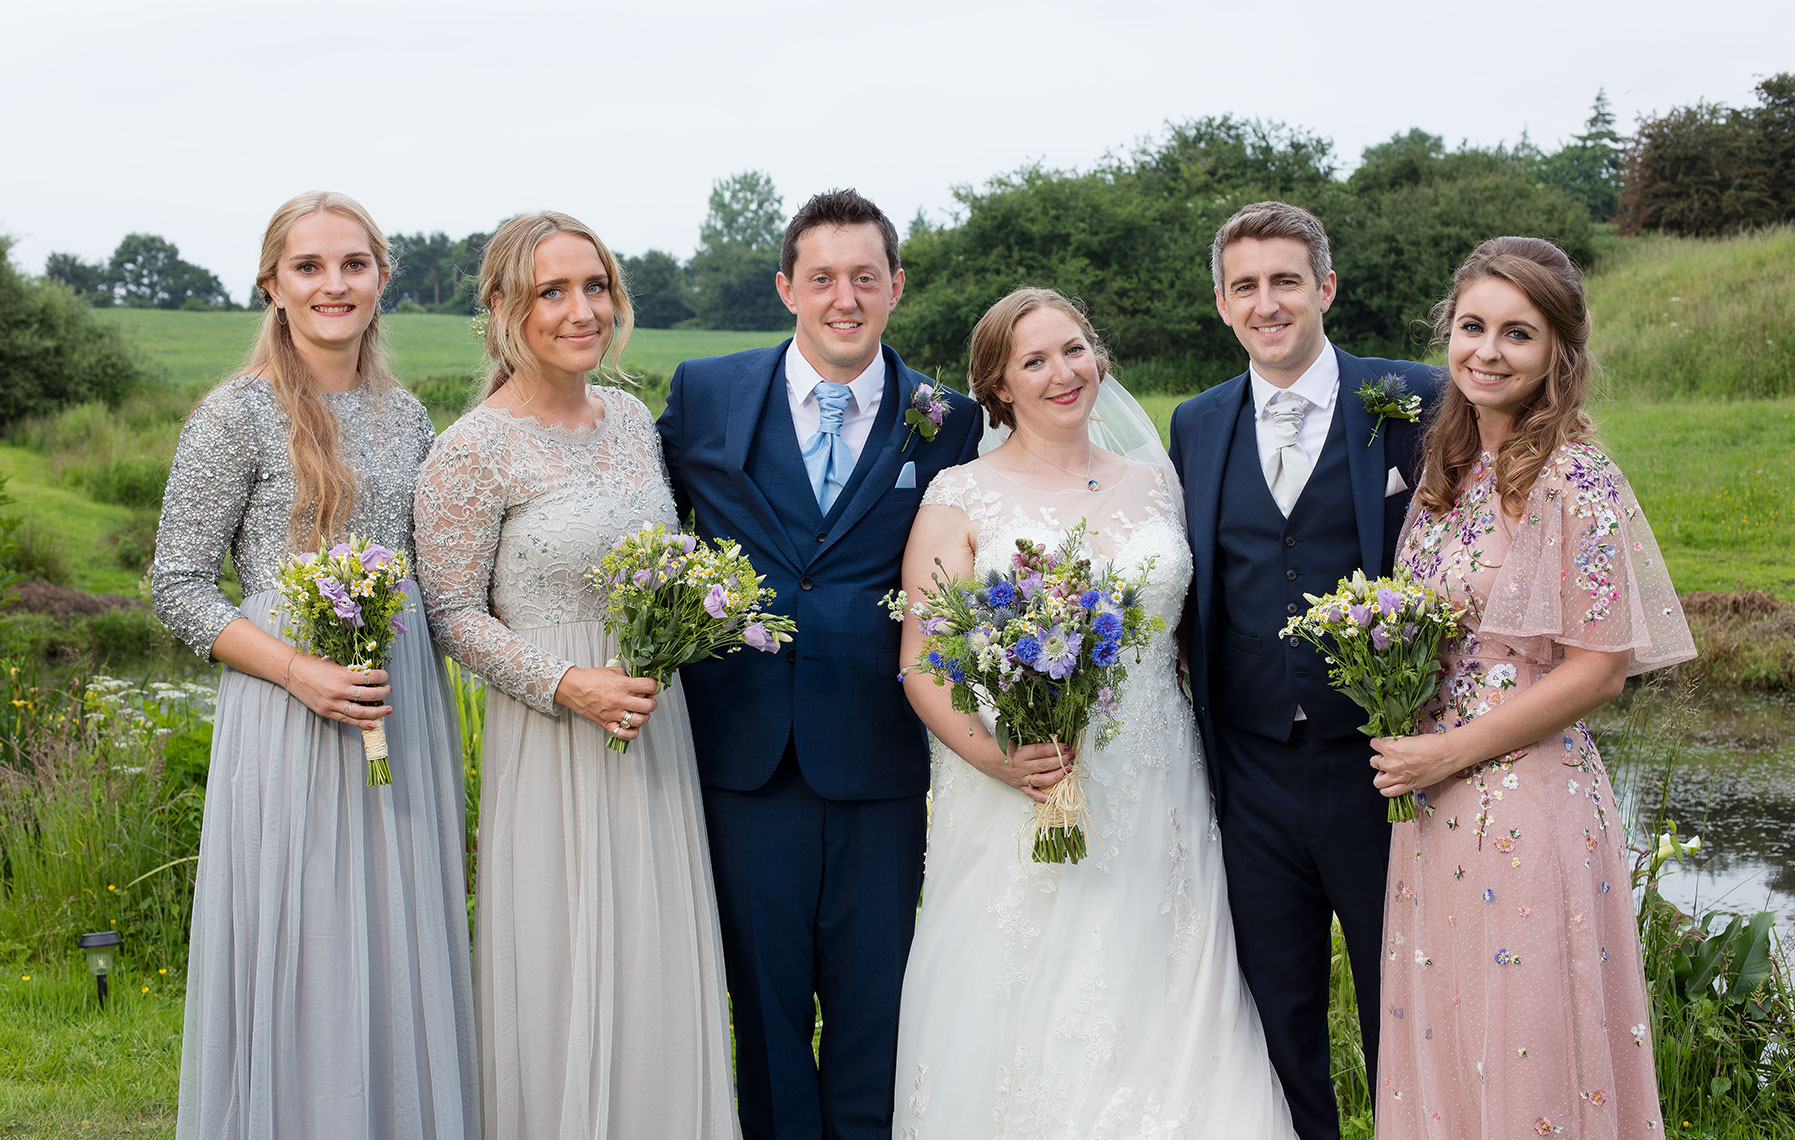 Bride Groom and Bridesmaids pose outdoors in countryside for wedding